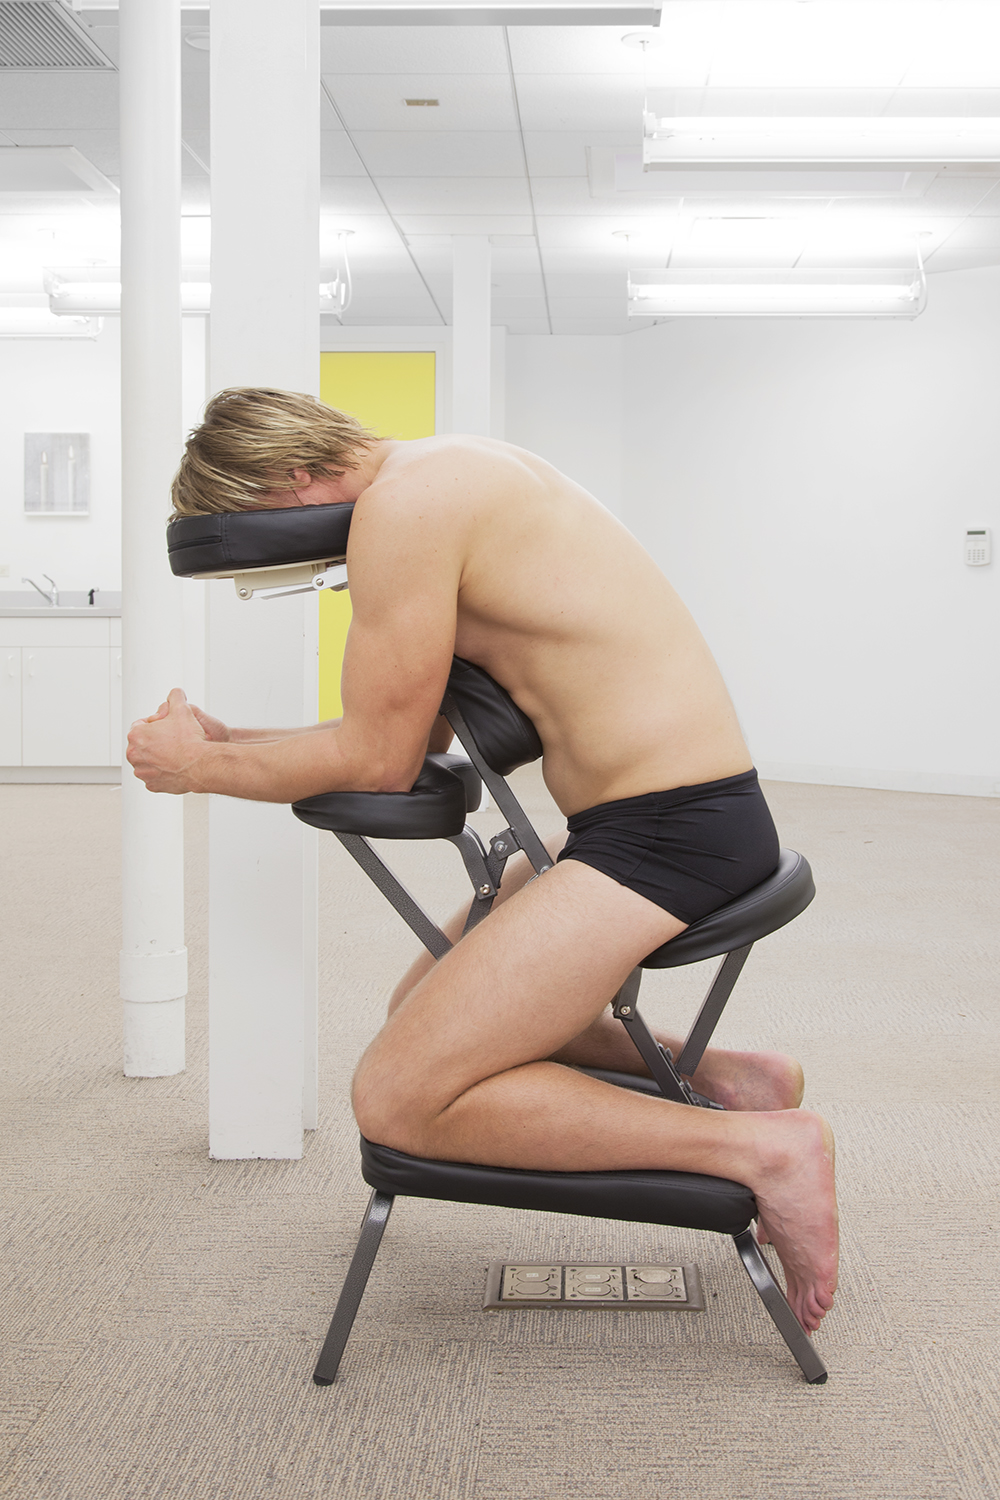 ALEX PERWEILER / ZACHARY SUSSKIND On Relief (Stanislav, South Florida), 2013 Man on massage chair Dimensions variable